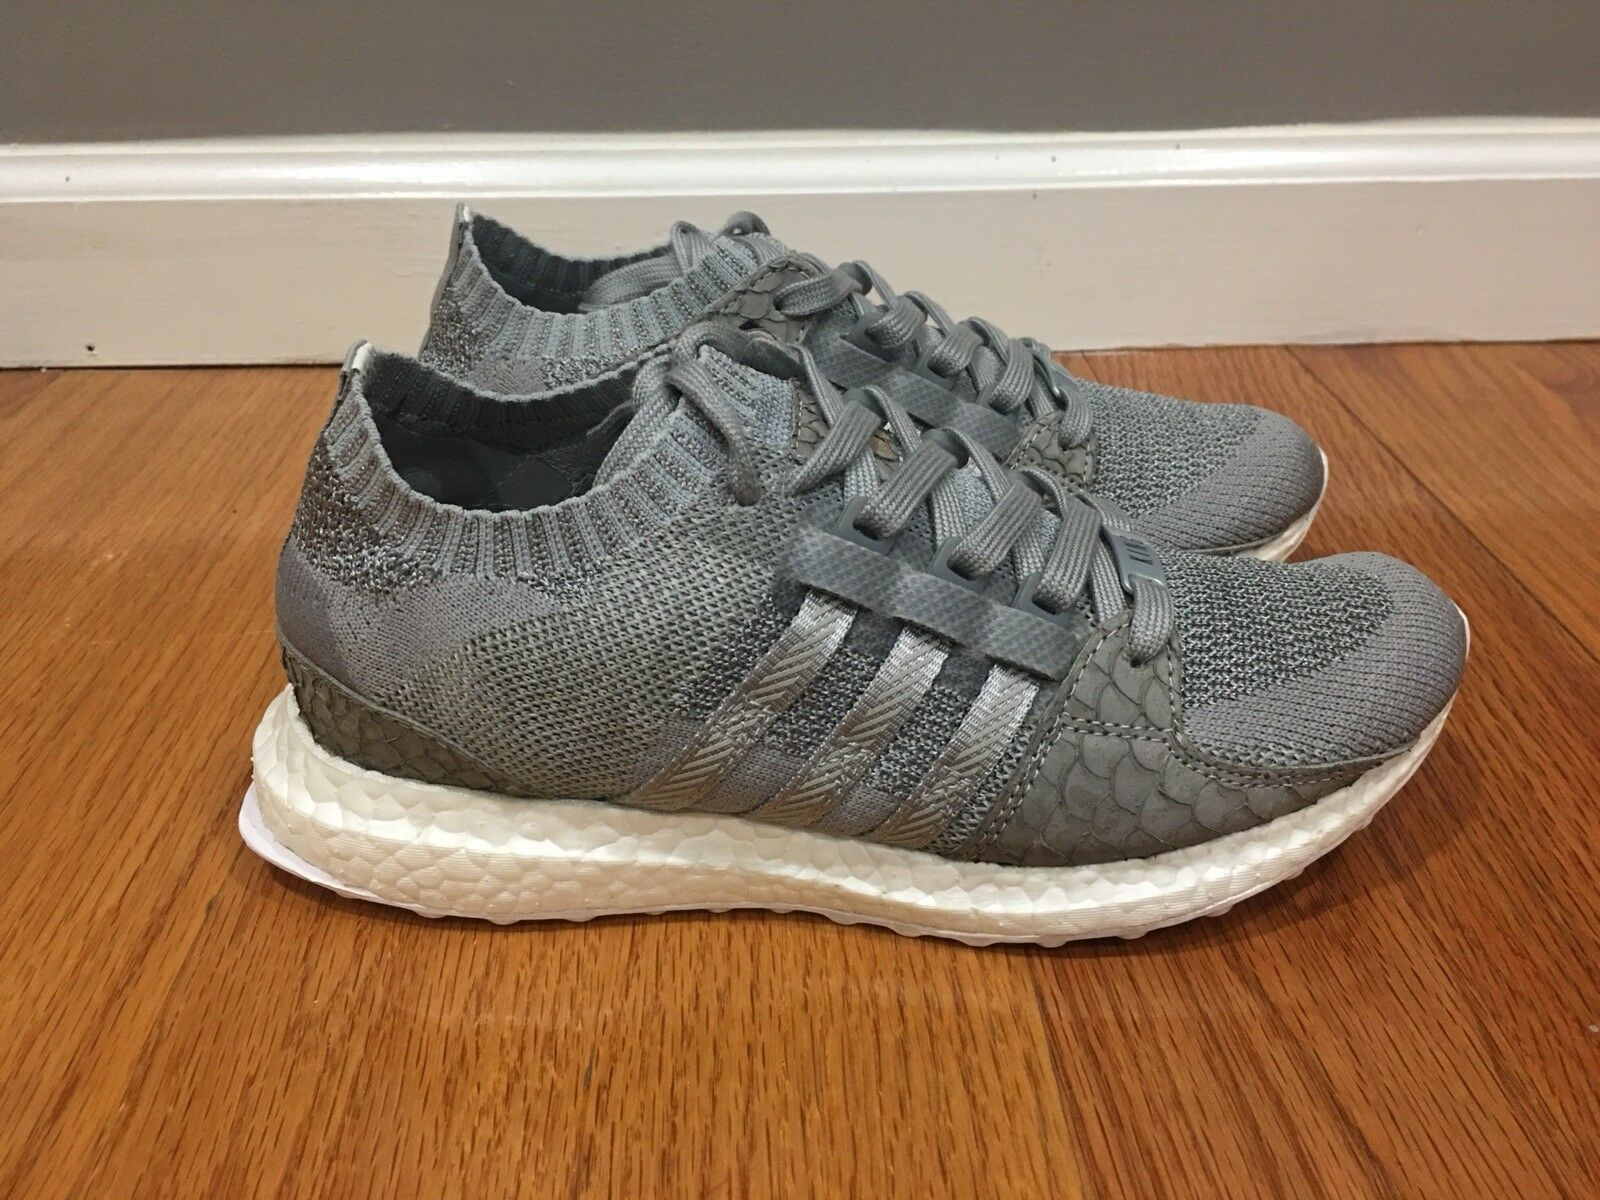 Adidas EQT Support Ultra PK Pusha T Grey Scale - S76777 - Size 5